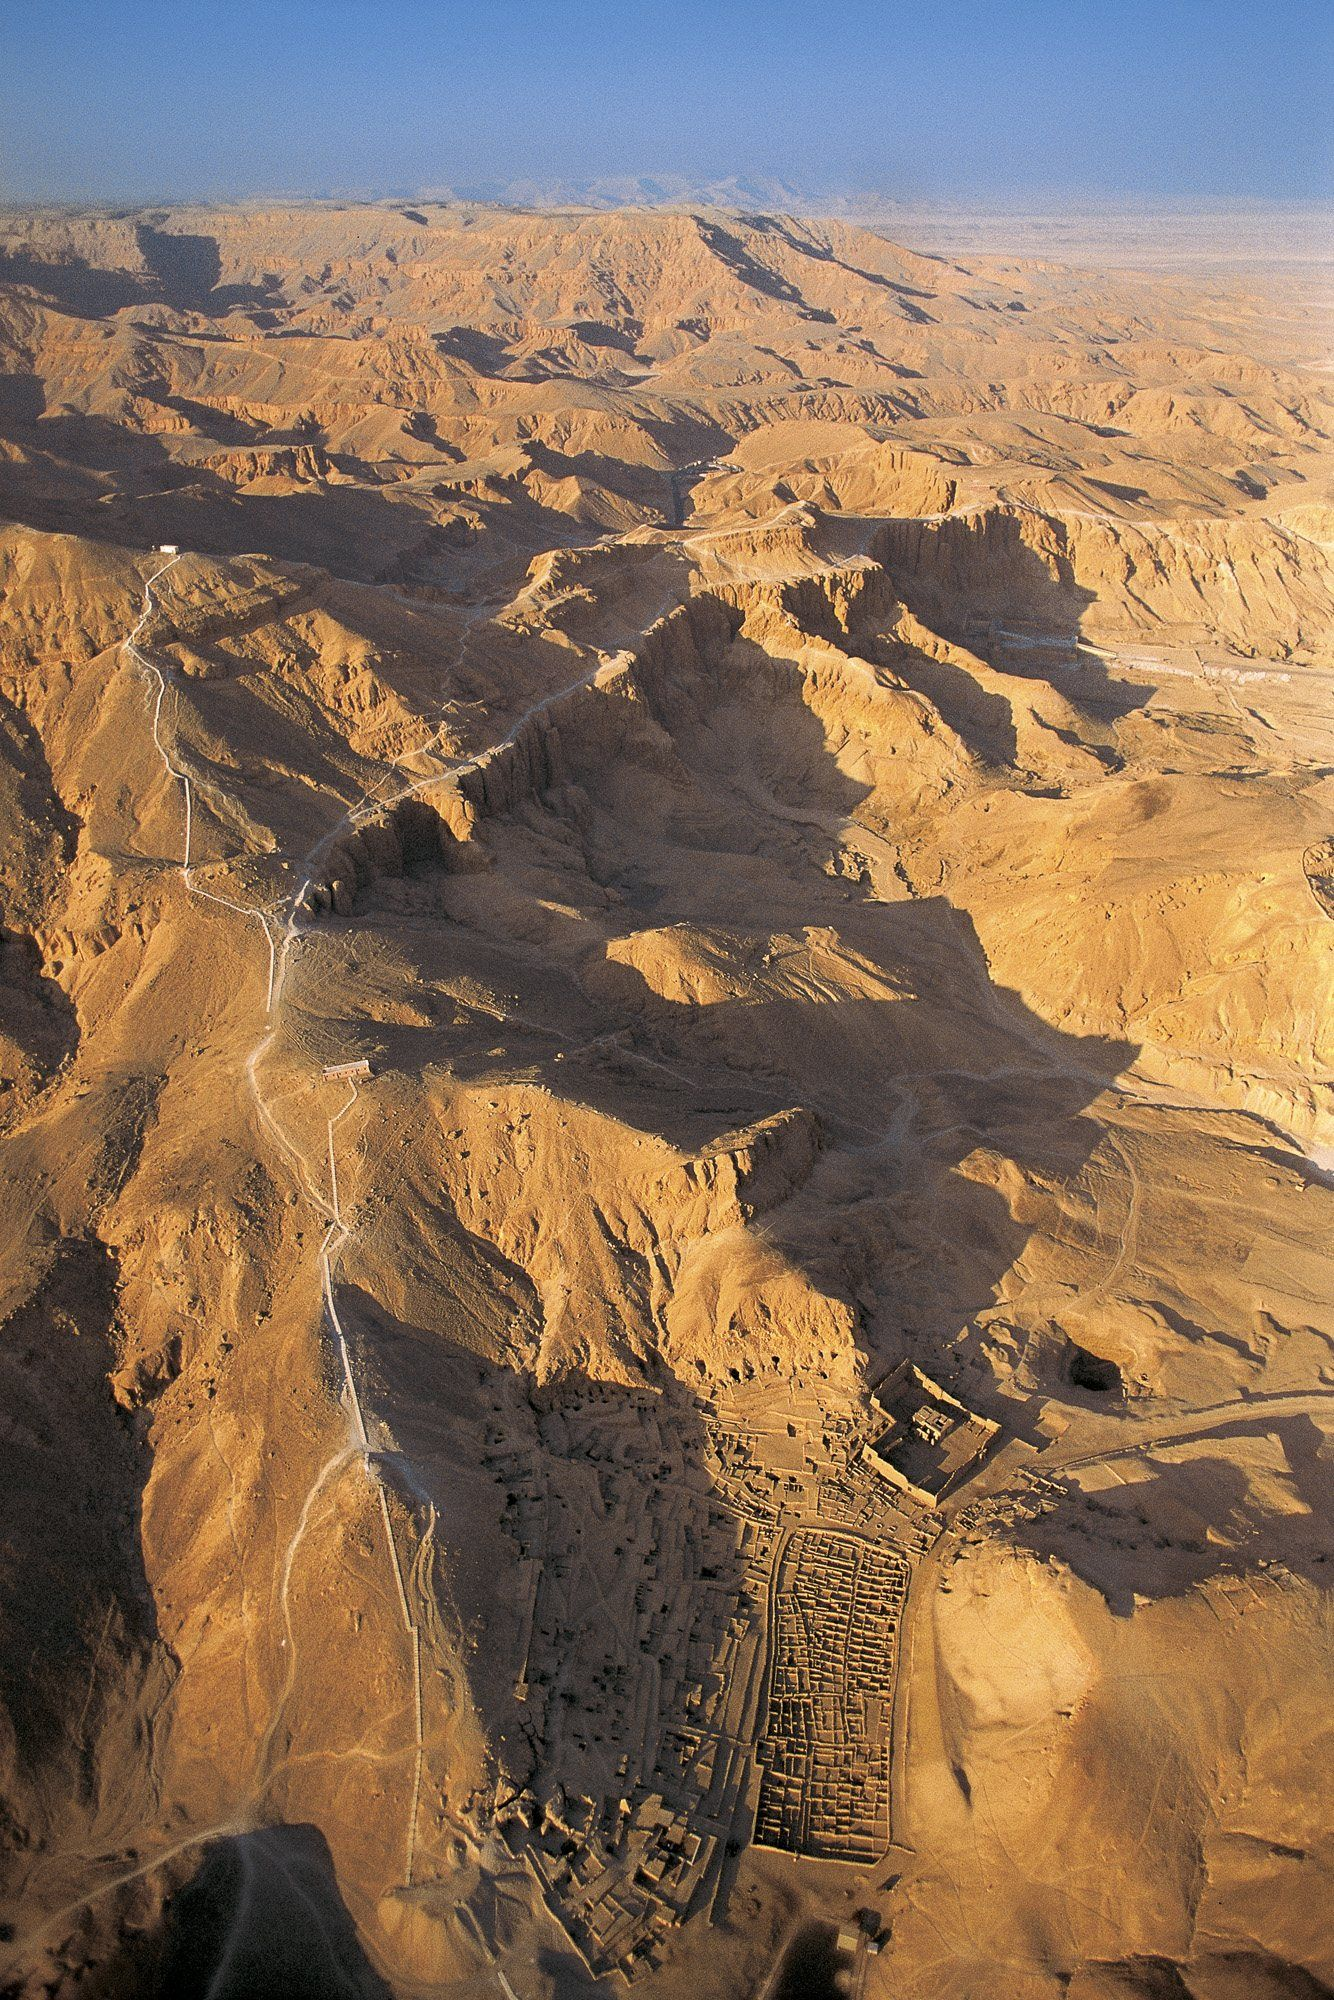 Deir el-Medina, from above   The picture features an overhead view of Deir el-Medina, surrounded by the rugged Theban mountains. To the left of the settlement may be the necropolis of workers.